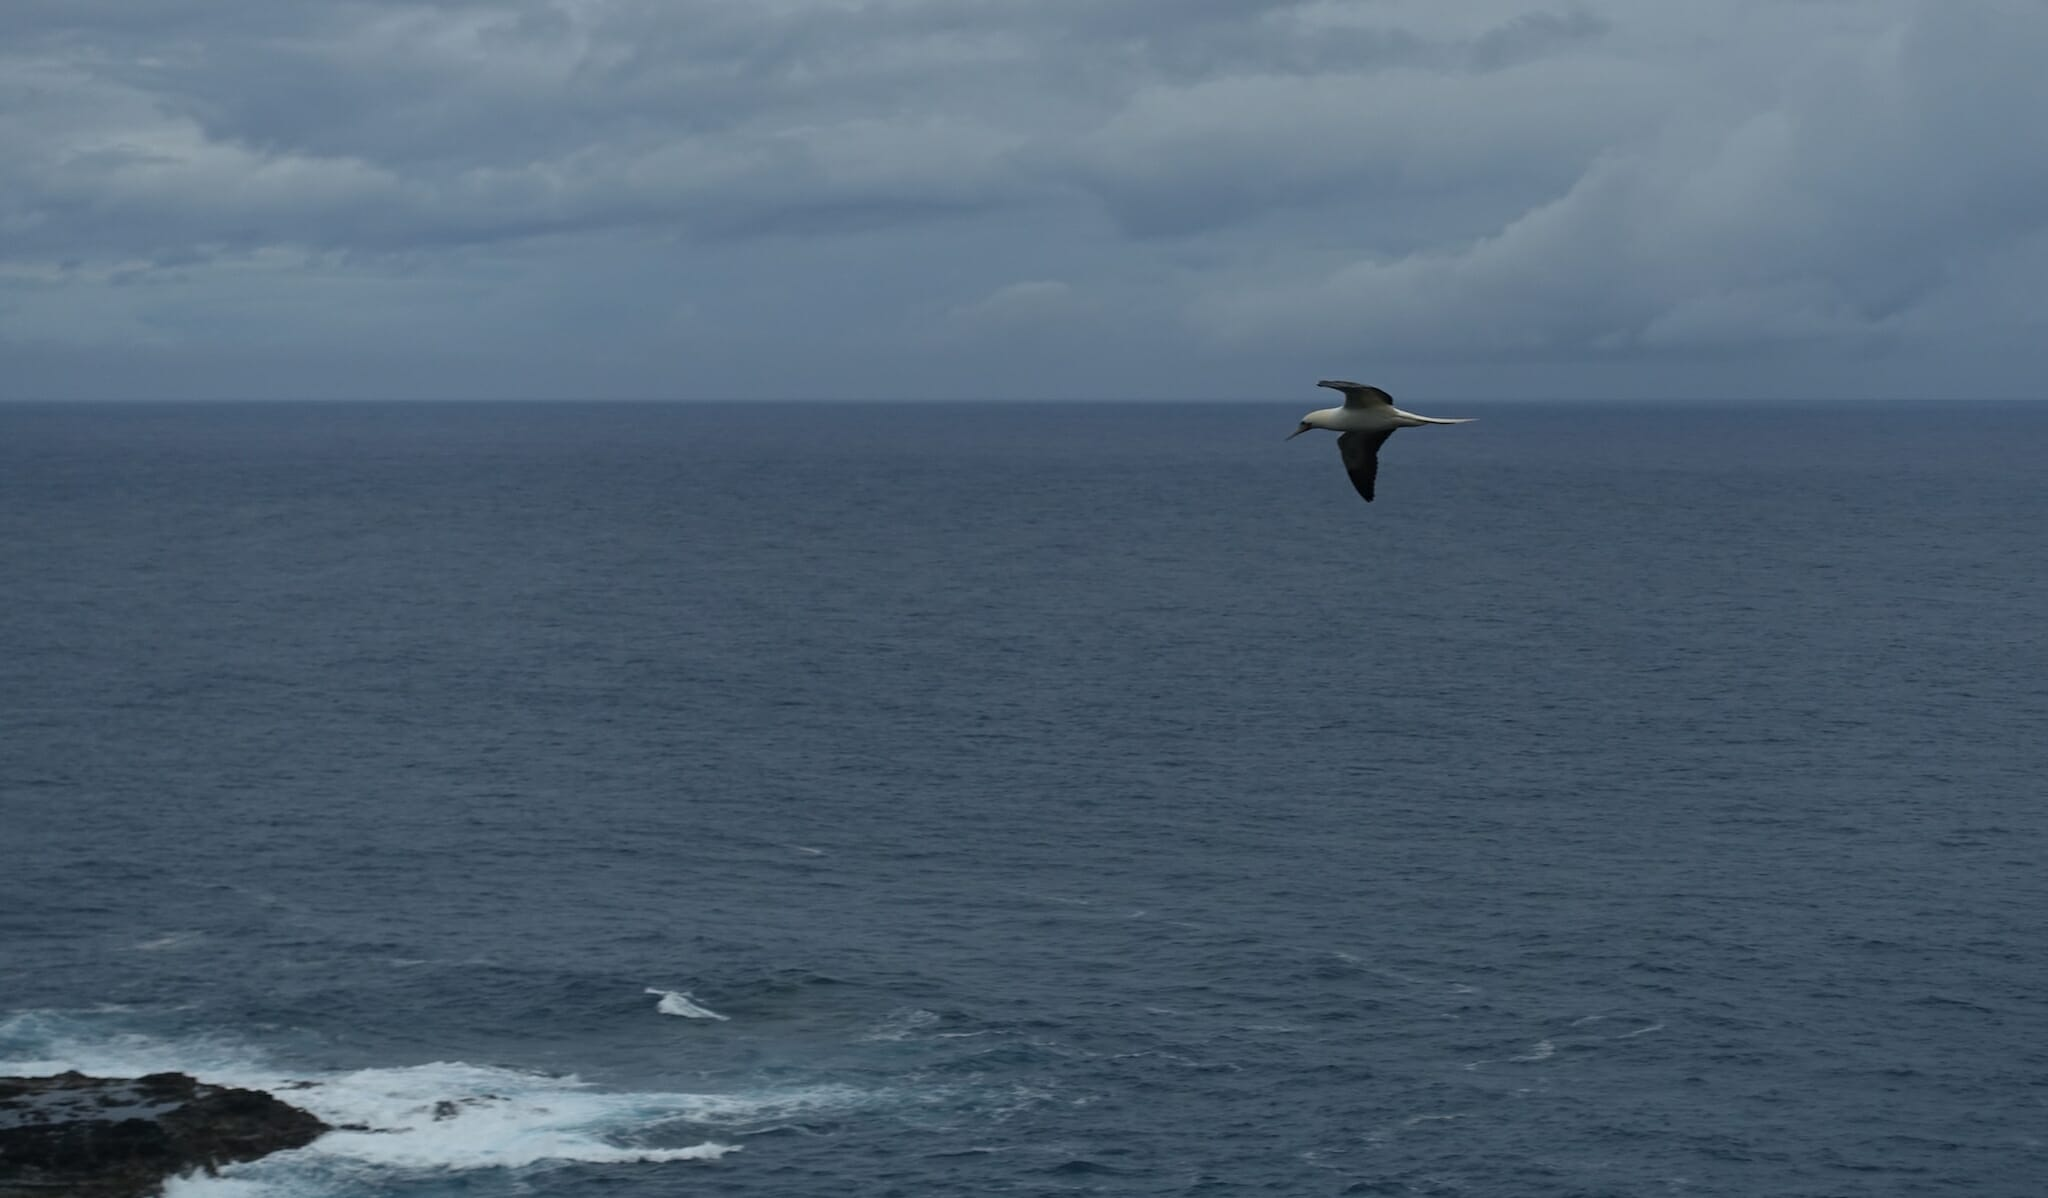 Red footed booby above the ocean at Kilauea National Wildlife Refuge